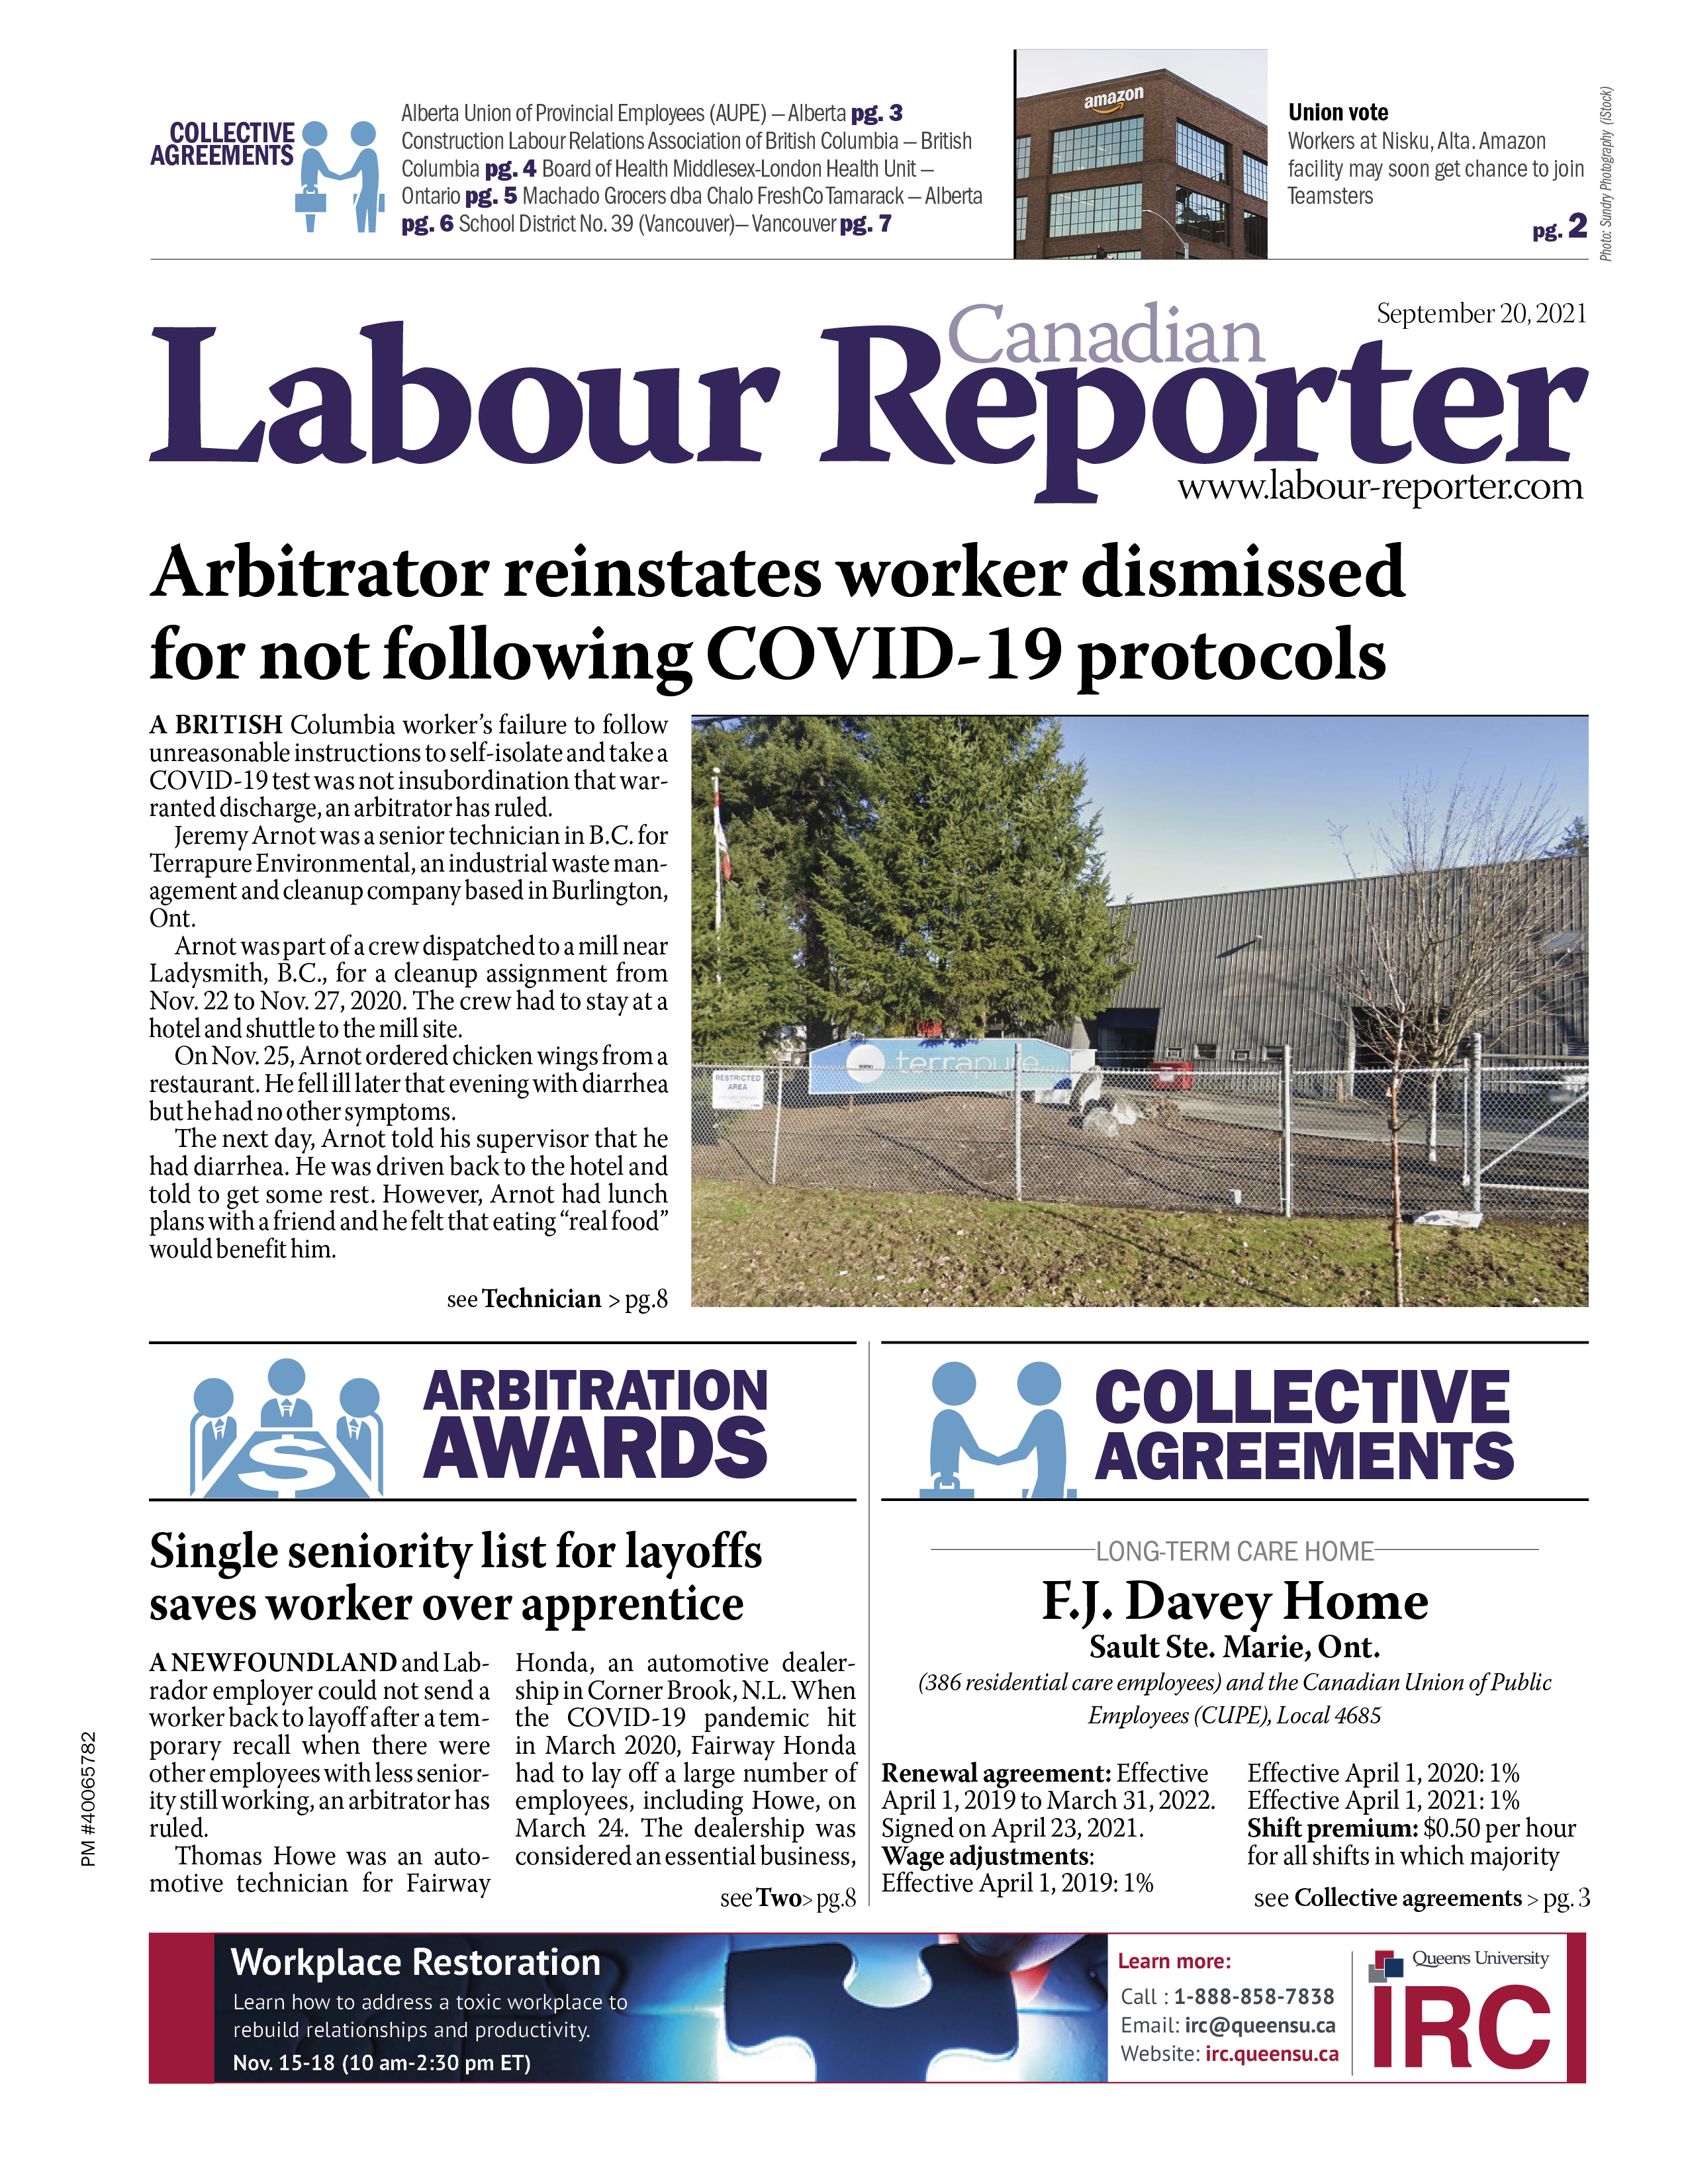 Canadian Labour Reporter